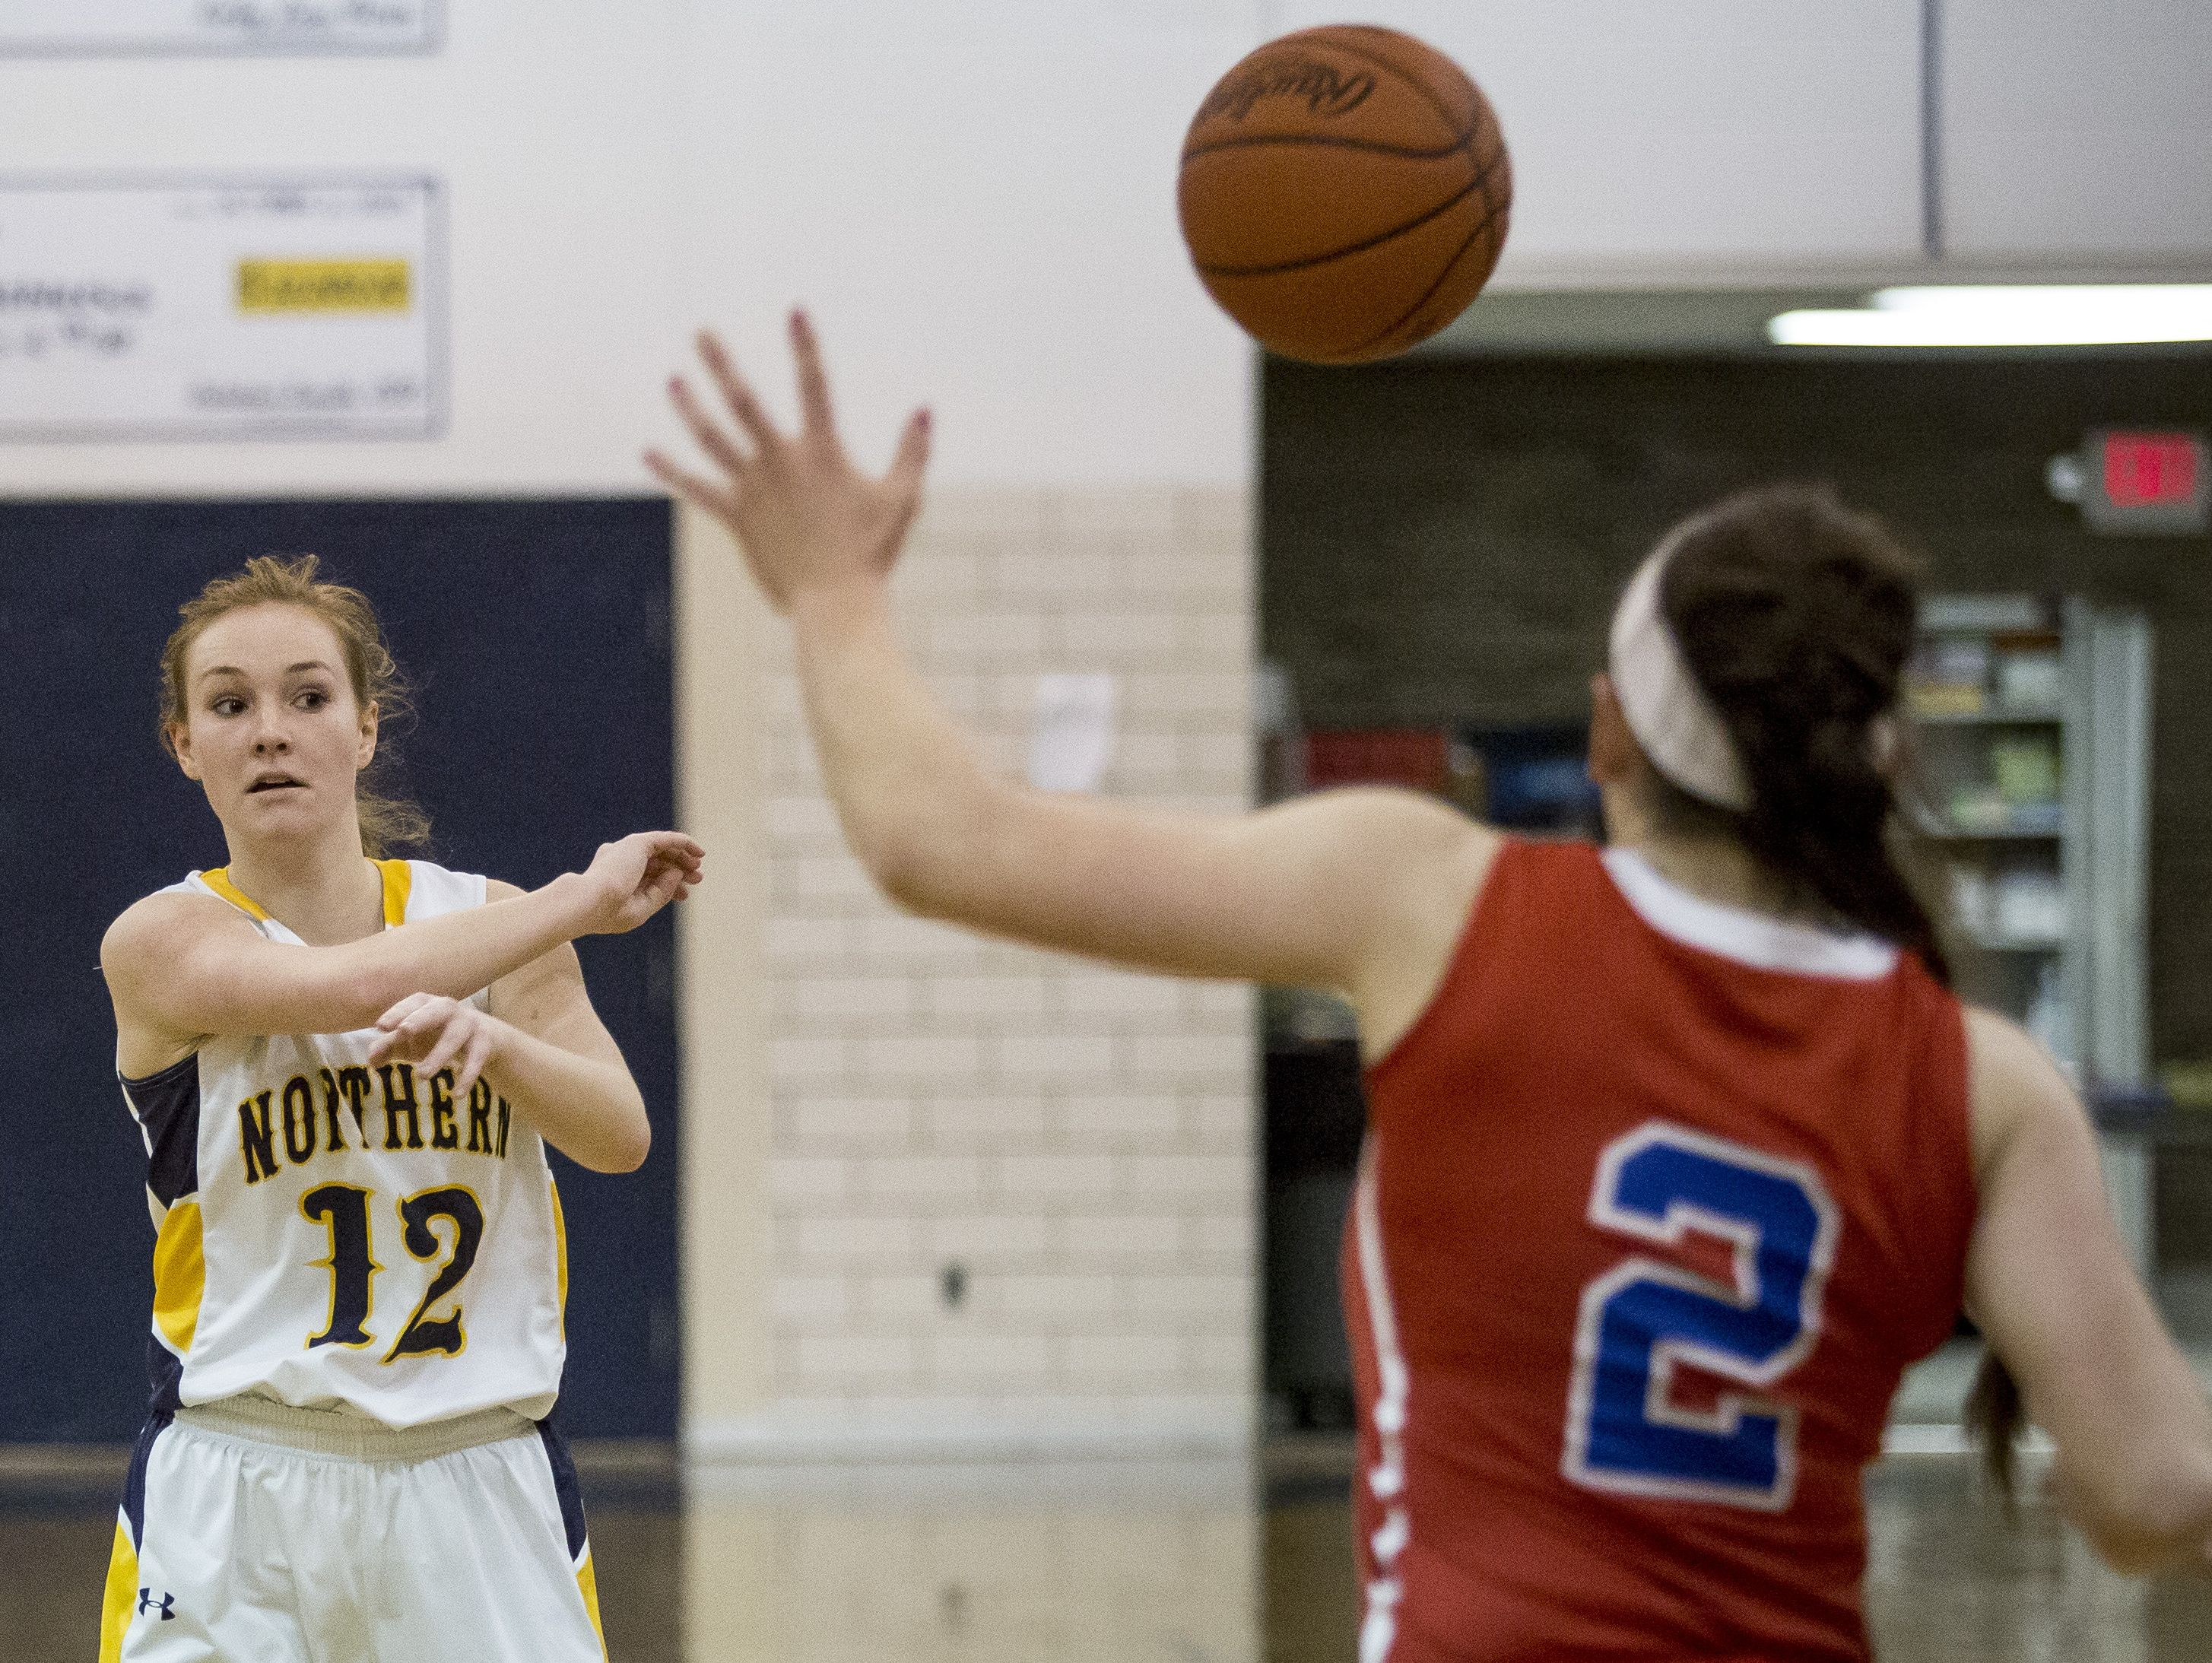 Port Huron Northern junior Kathleen O'Connor passes the ball during a basketball game Friday, Feb. 19, 2016 at Port Huron Northern High School.